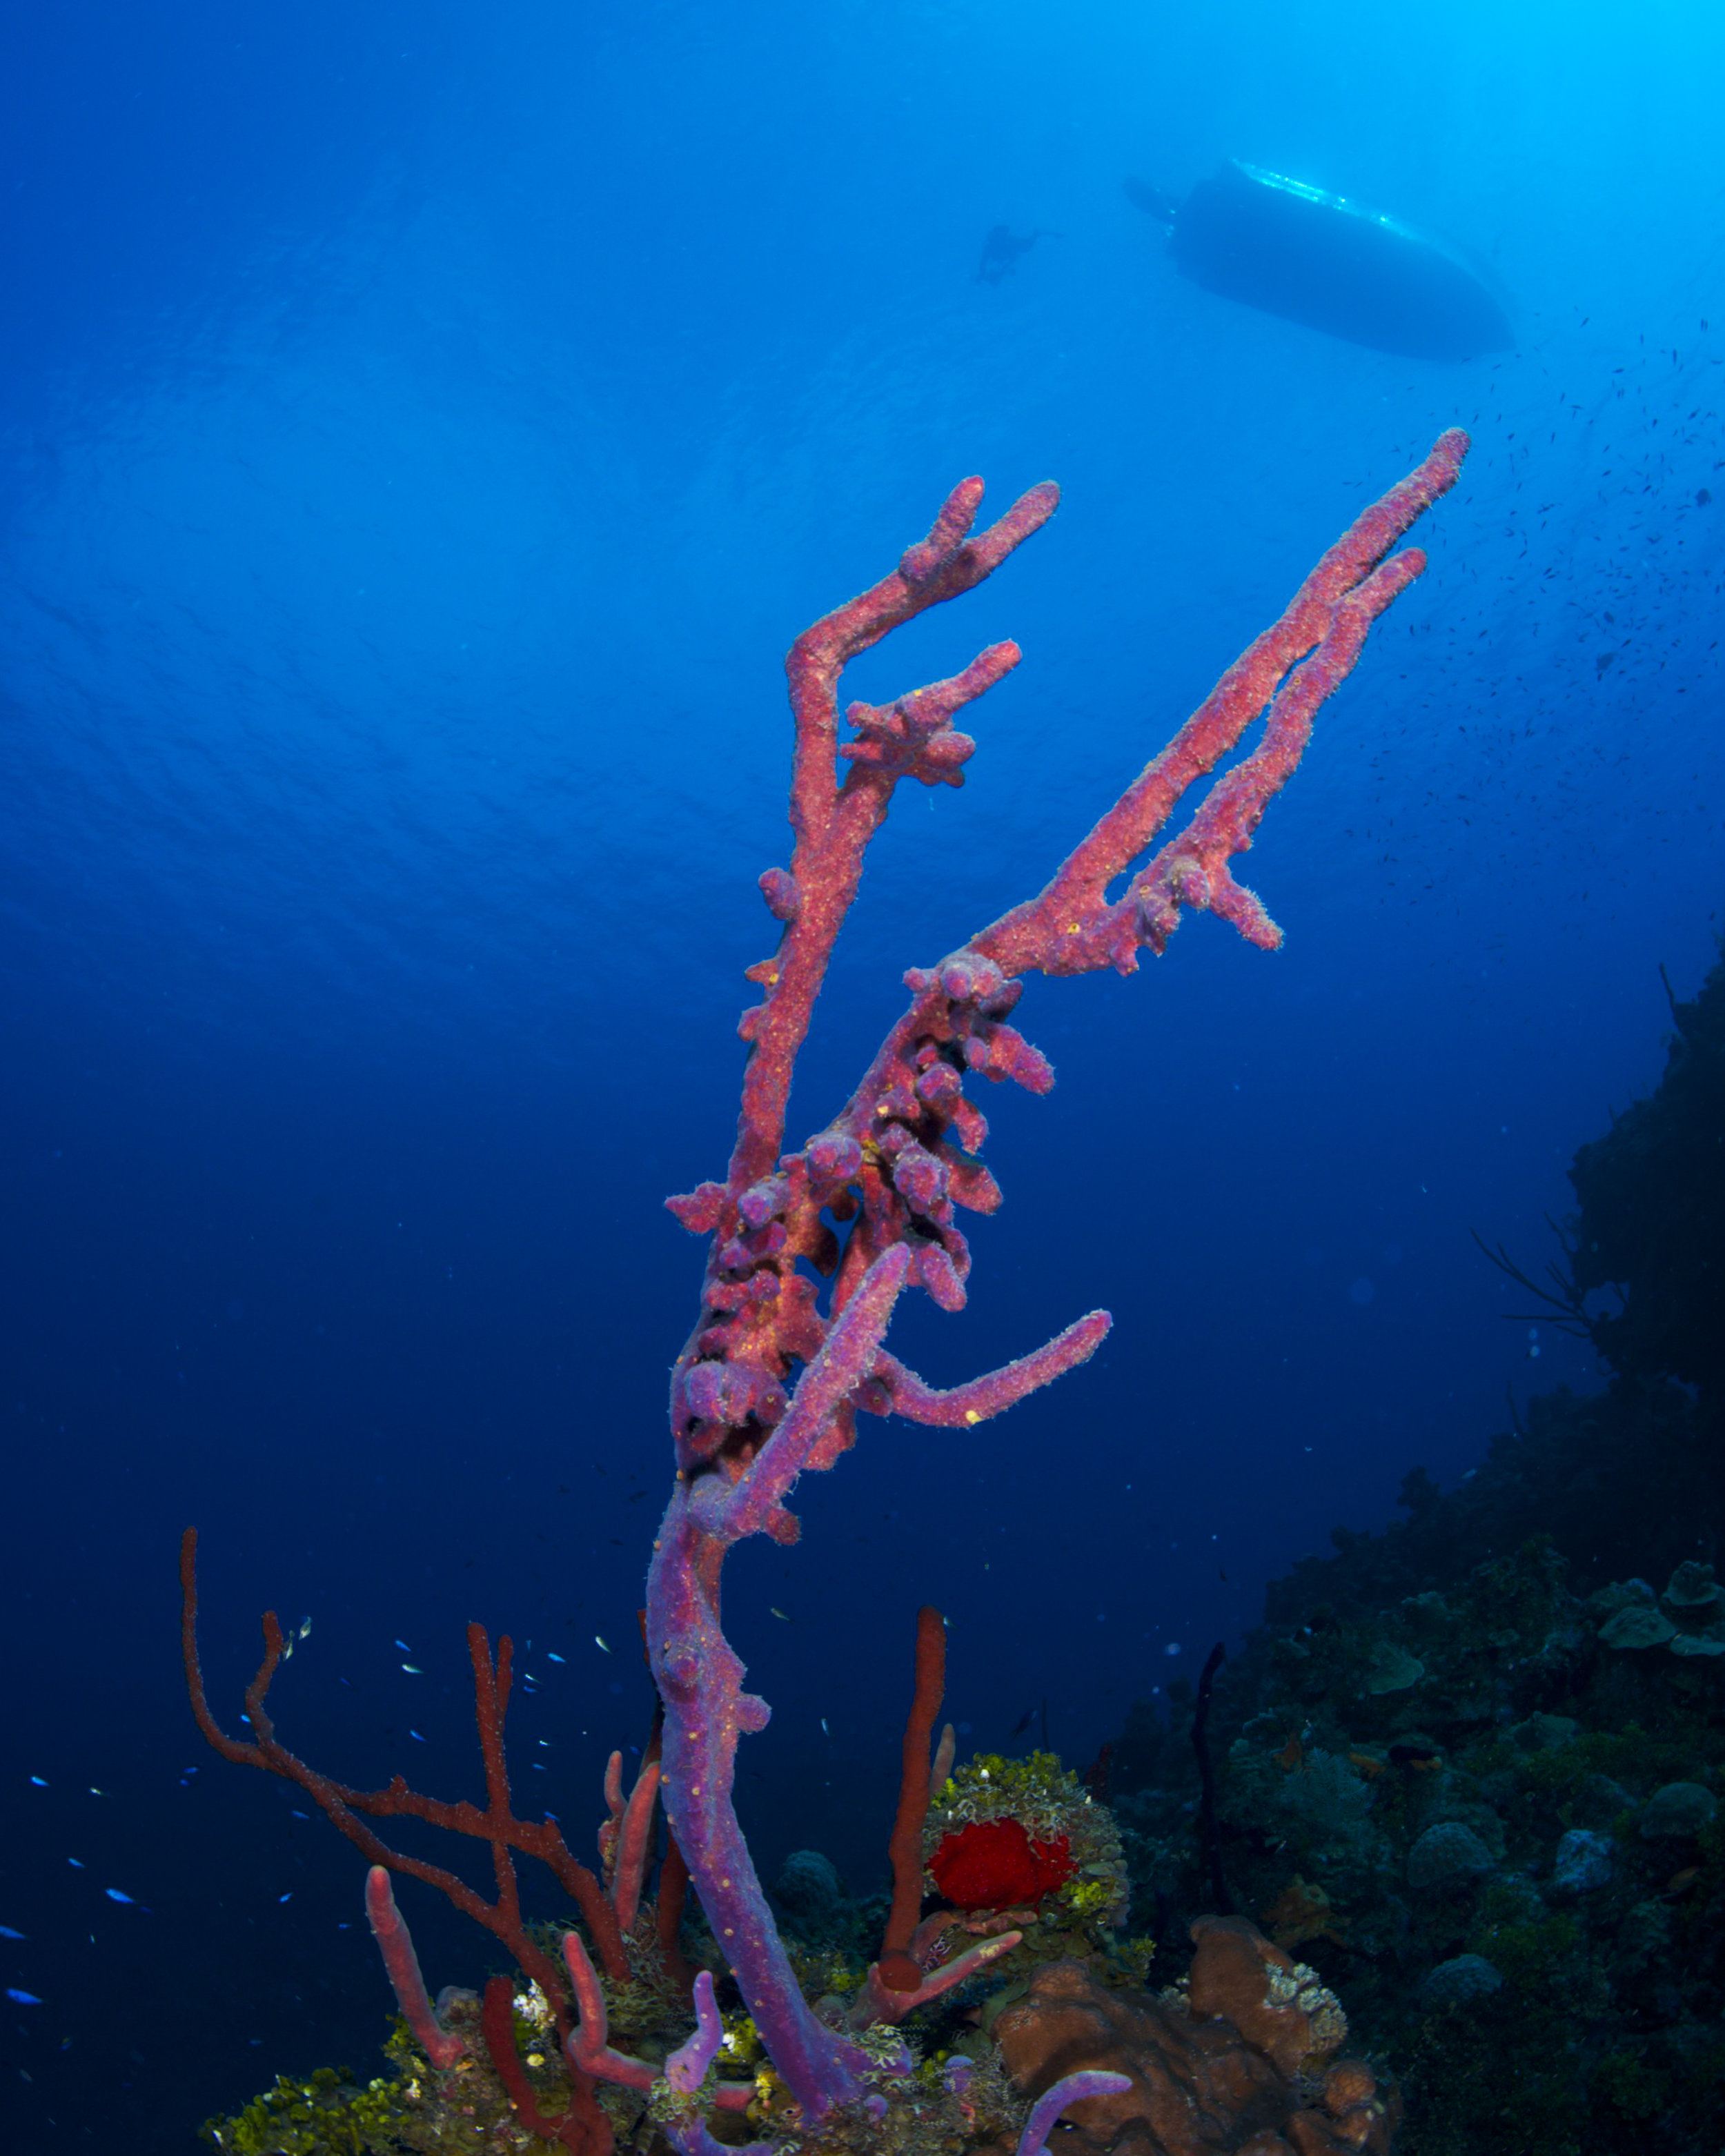 ROW PORE ROPE SPONGE, GRAND CAYMAN CREDIT: ELLEN CUYLAERTS / coral reef image bank